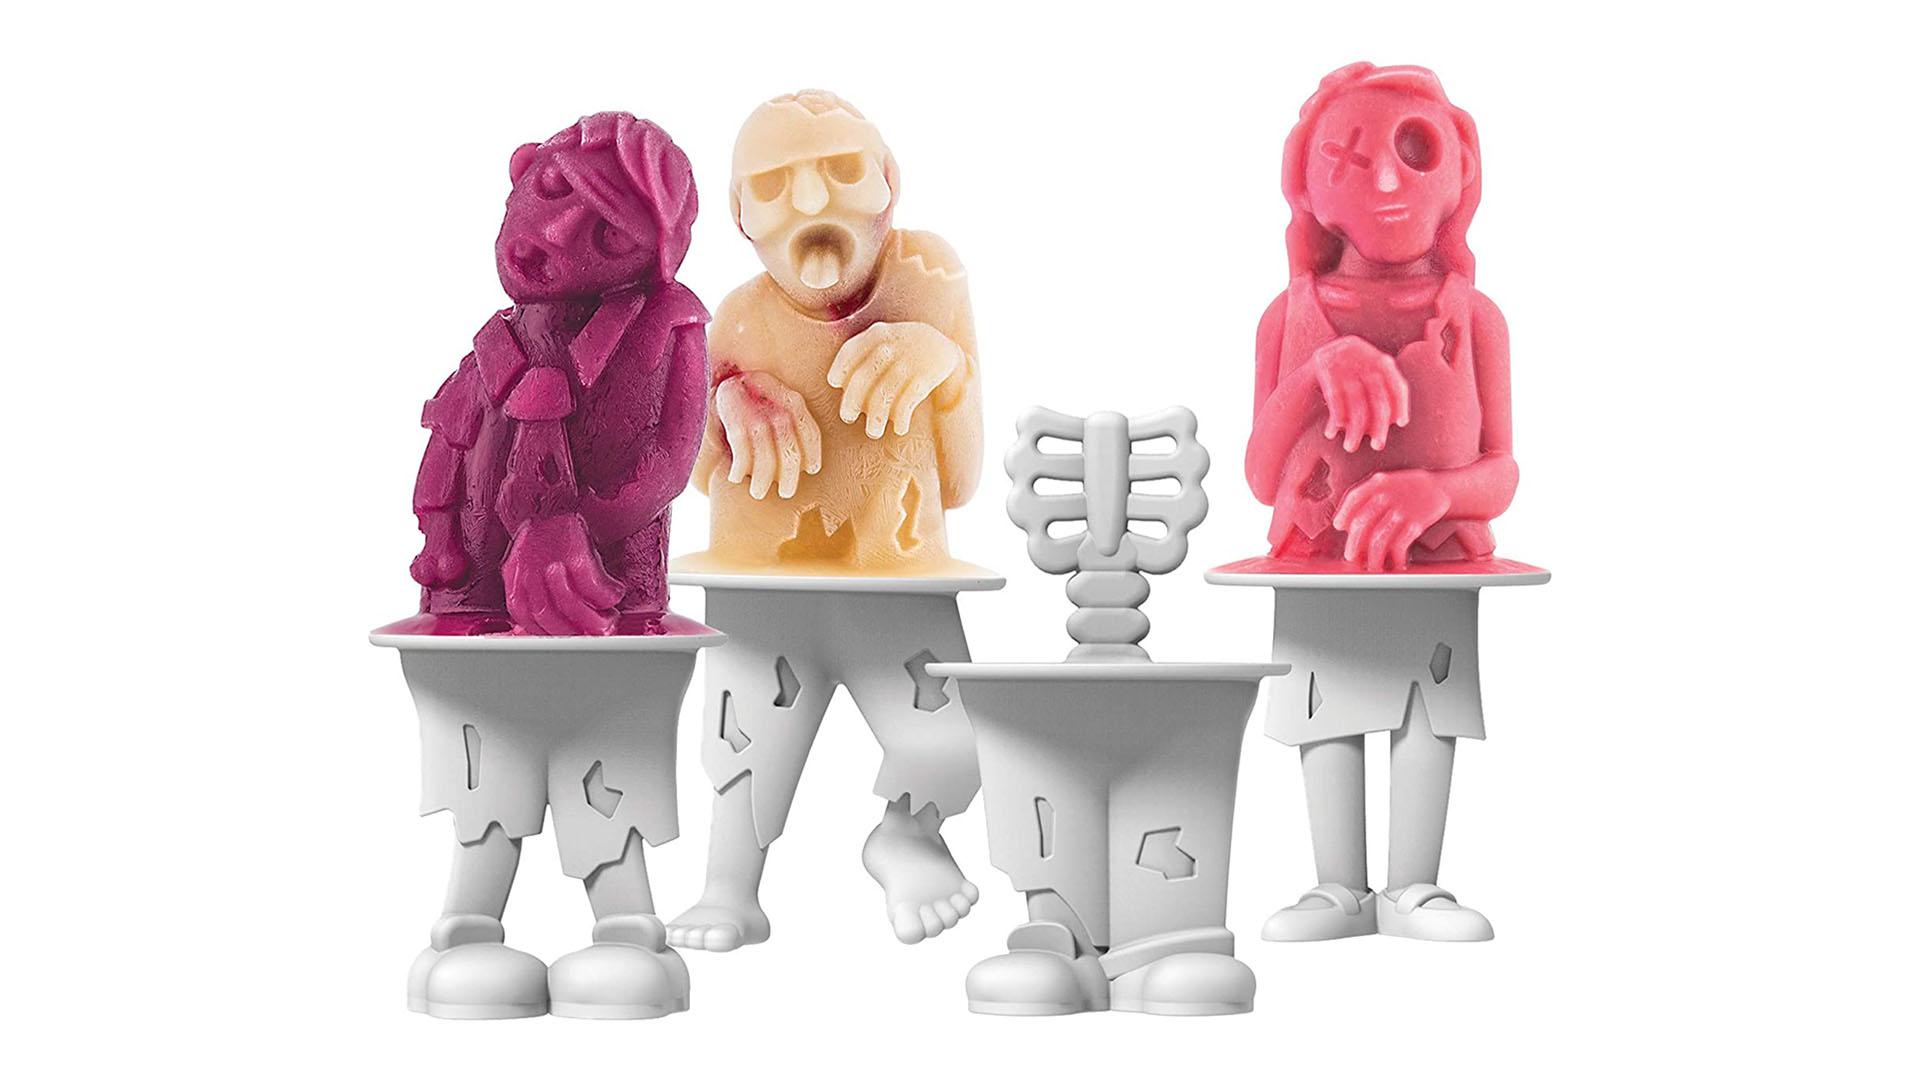 Zombies Silikone Popsicle Mould Maker